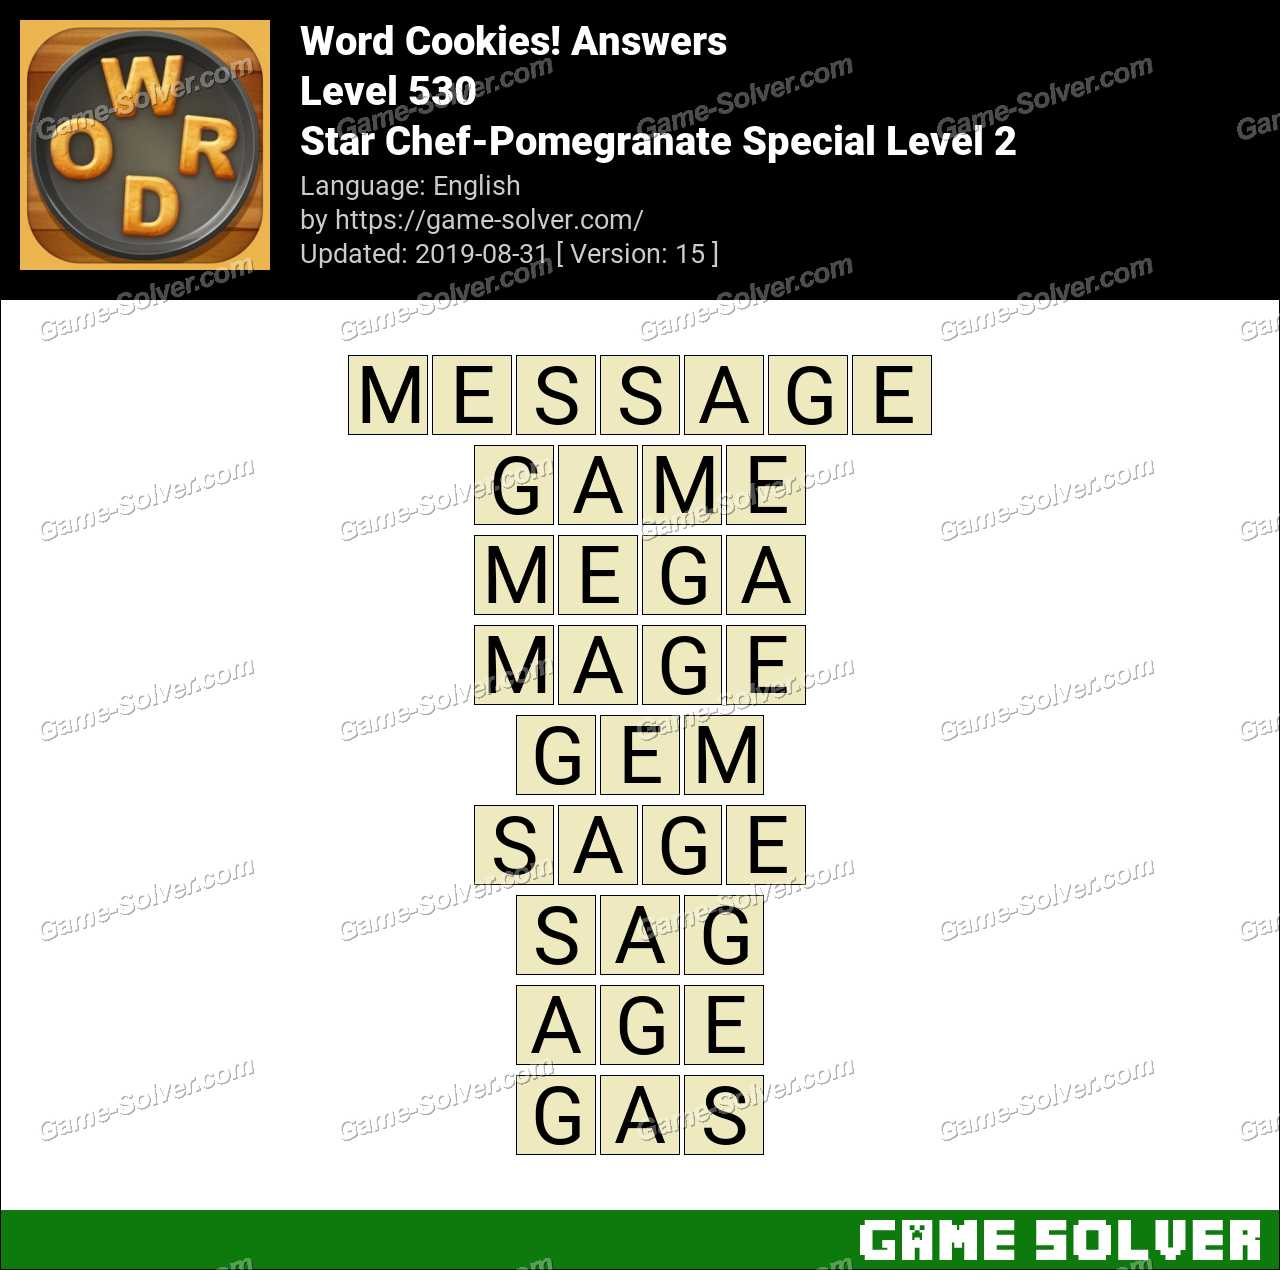 Word Cookies Star Chef-Pomegranate Special Level 2 Answers